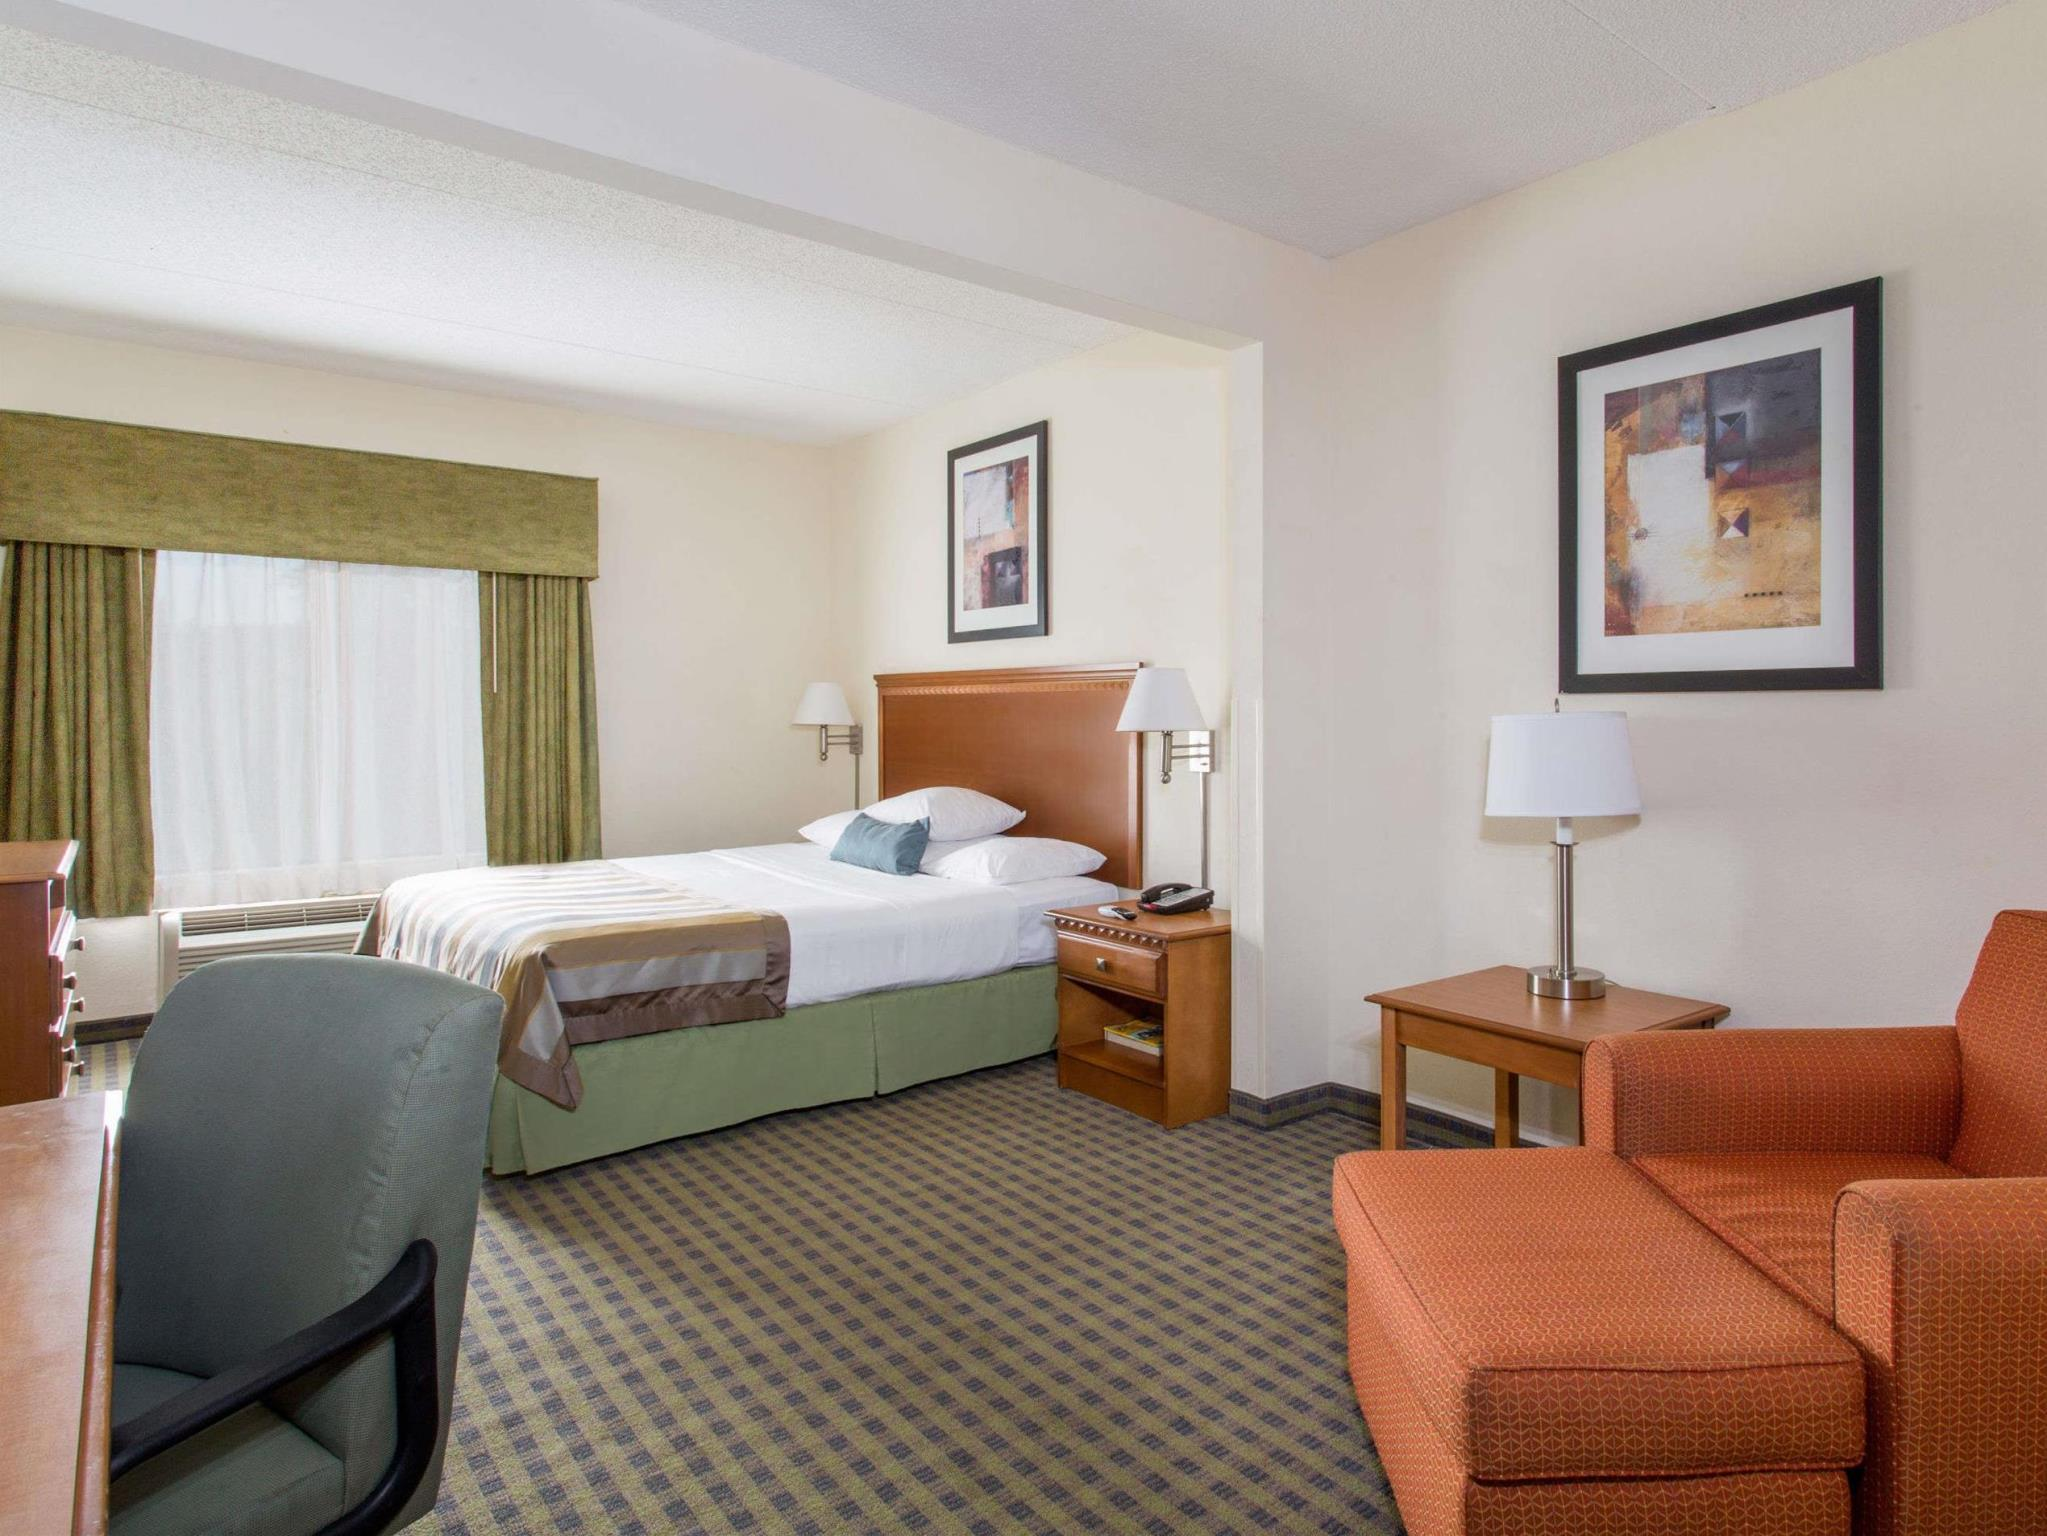 1 King Bed - Nonsmoking Suite - Free Breakfast, Free Wifi, Mini Fridge, Whirlpool